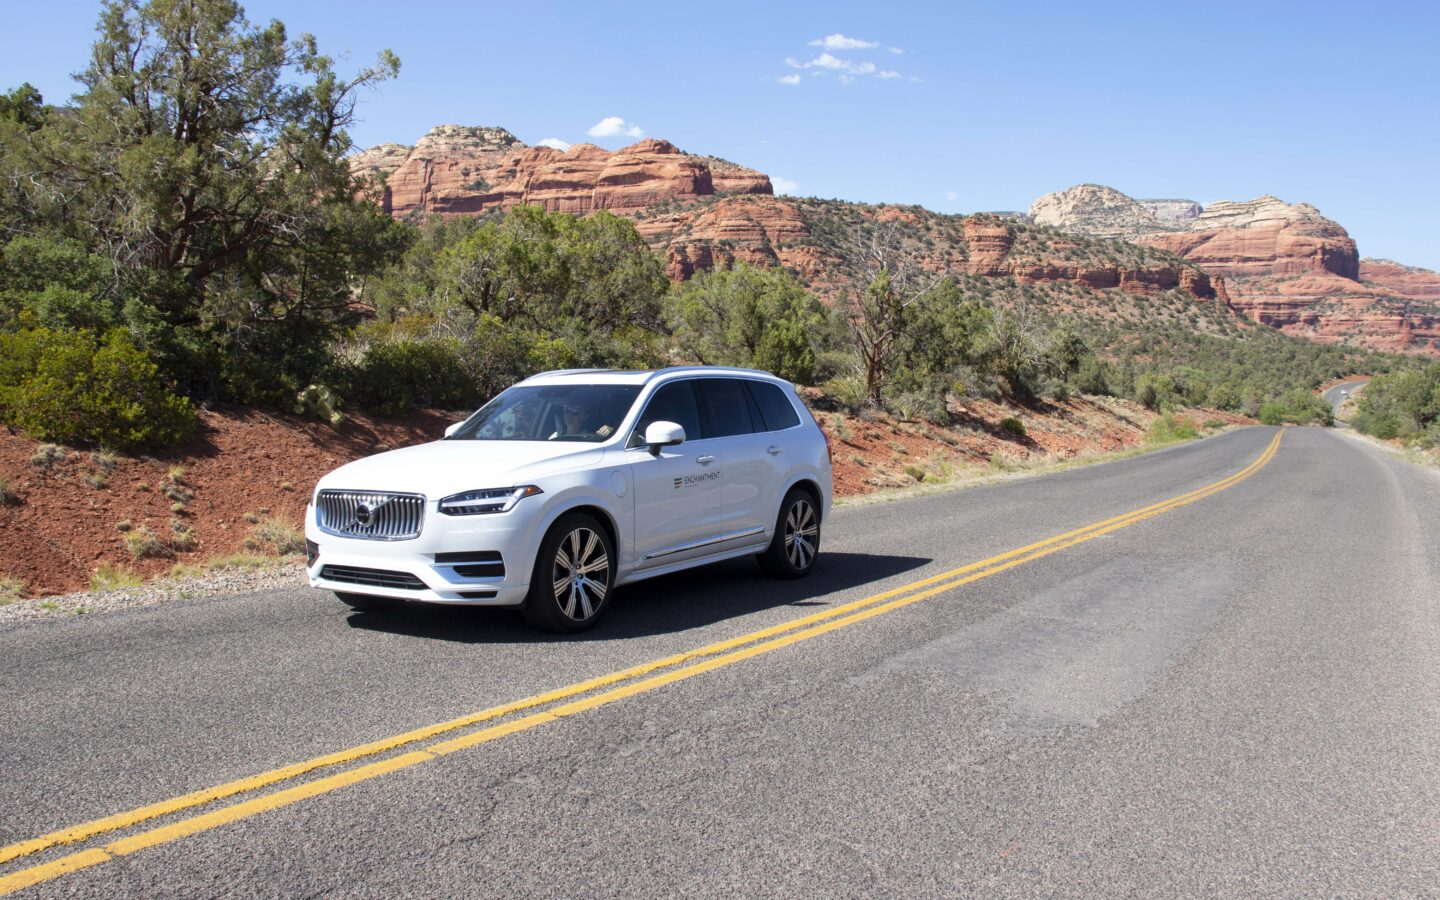 white car in the road with tress and canyon mountains in the background